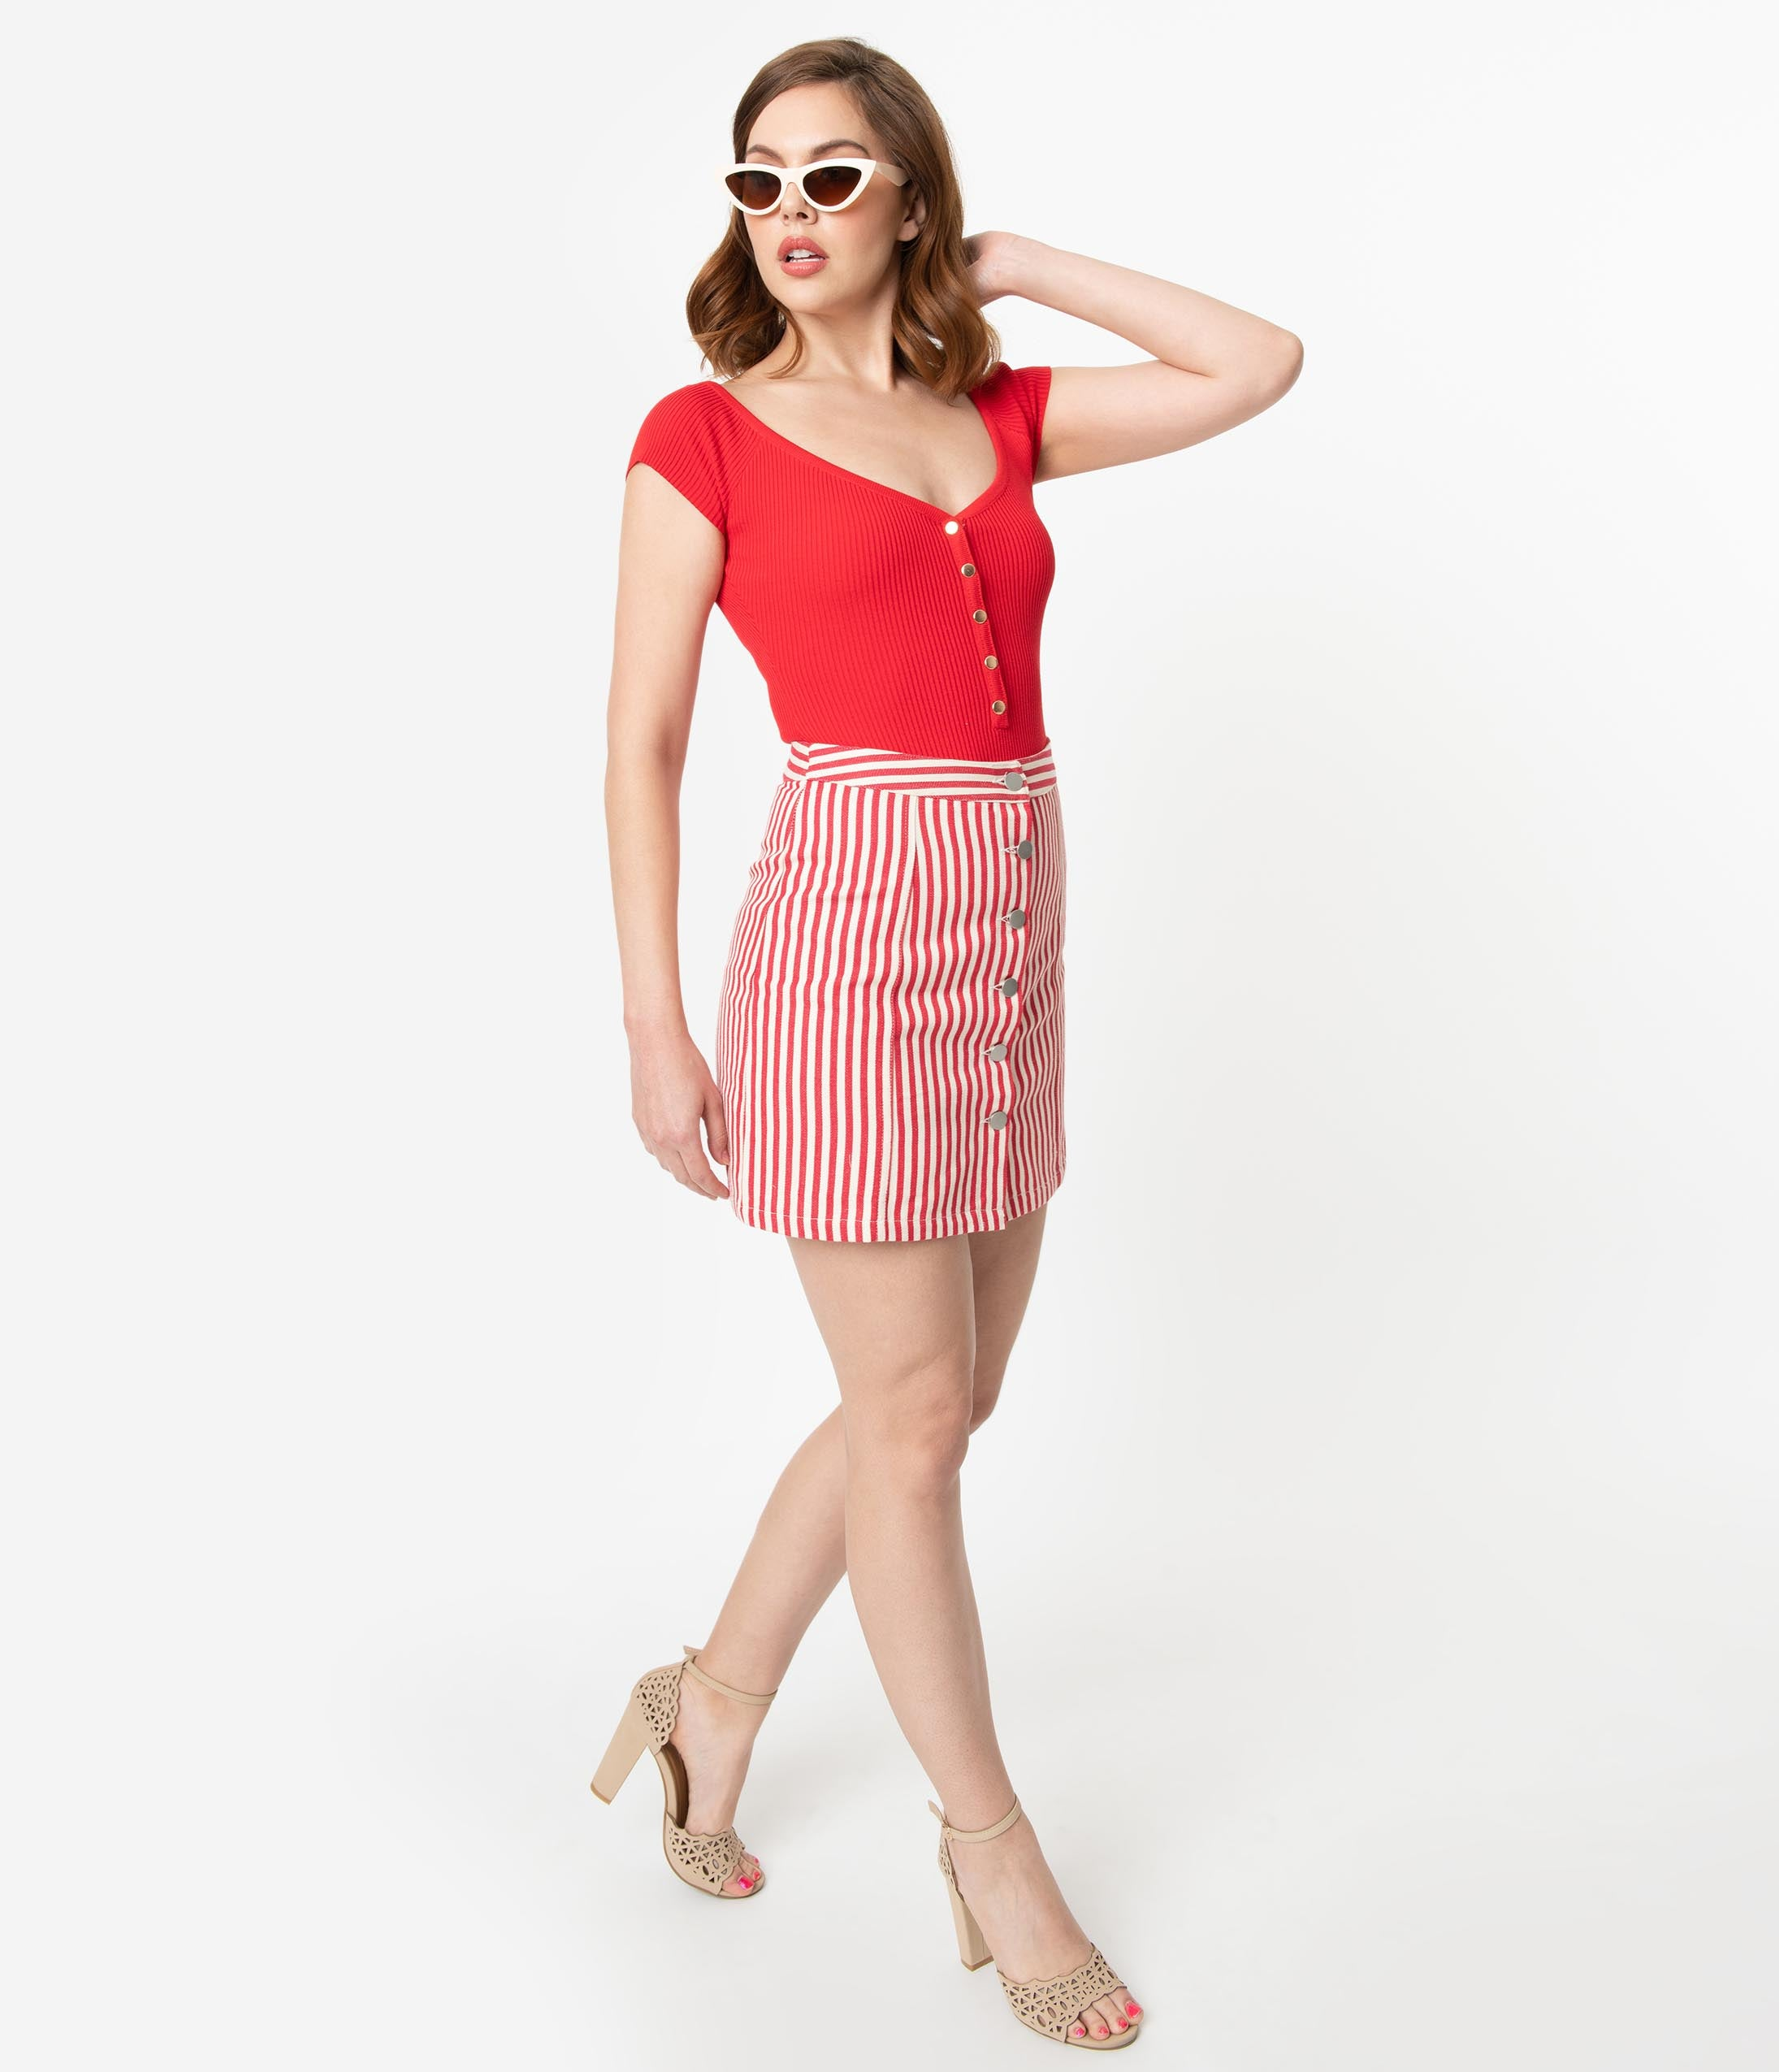 4a76cc36c Vintage Clothing & Dresses – Retro Clothing Styles | Unique Vintage